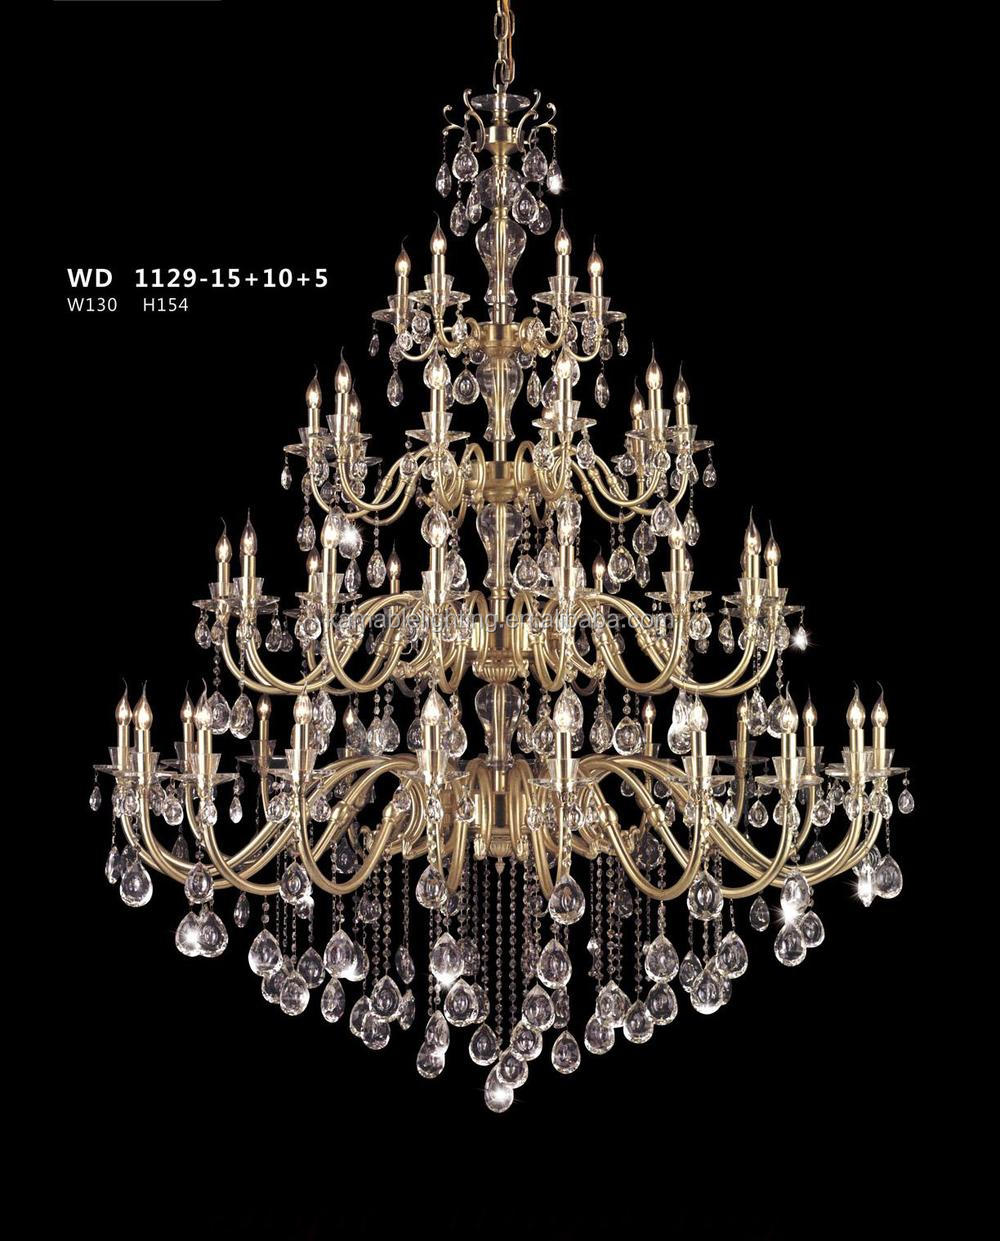 Elegance crystal drop brass chandelier project light good for villa,hotel,church